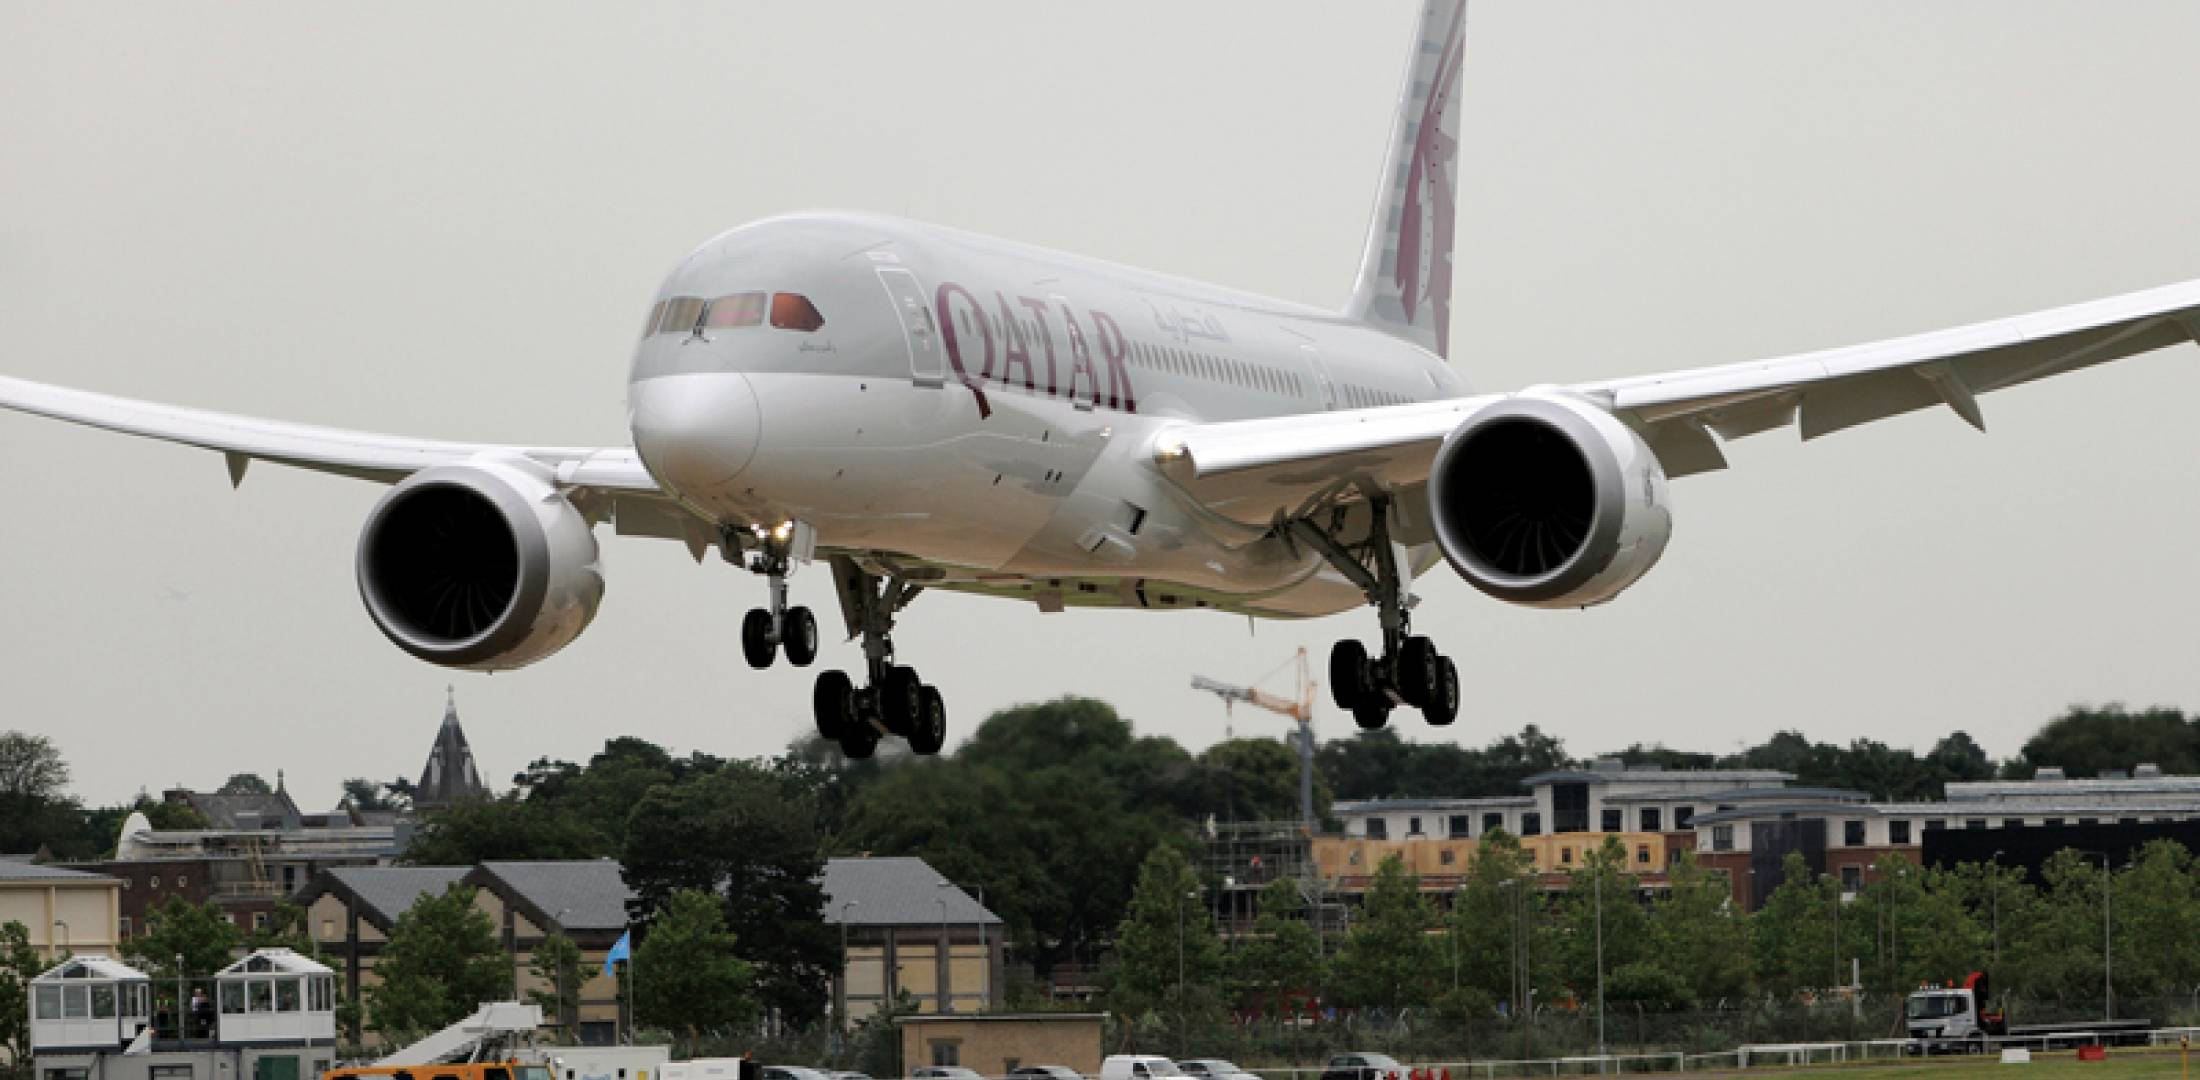 Qatar Airways CEO Akbar Al Baker has been in talks with Saudi Arabian officials over plans to open up the country's airline sector.